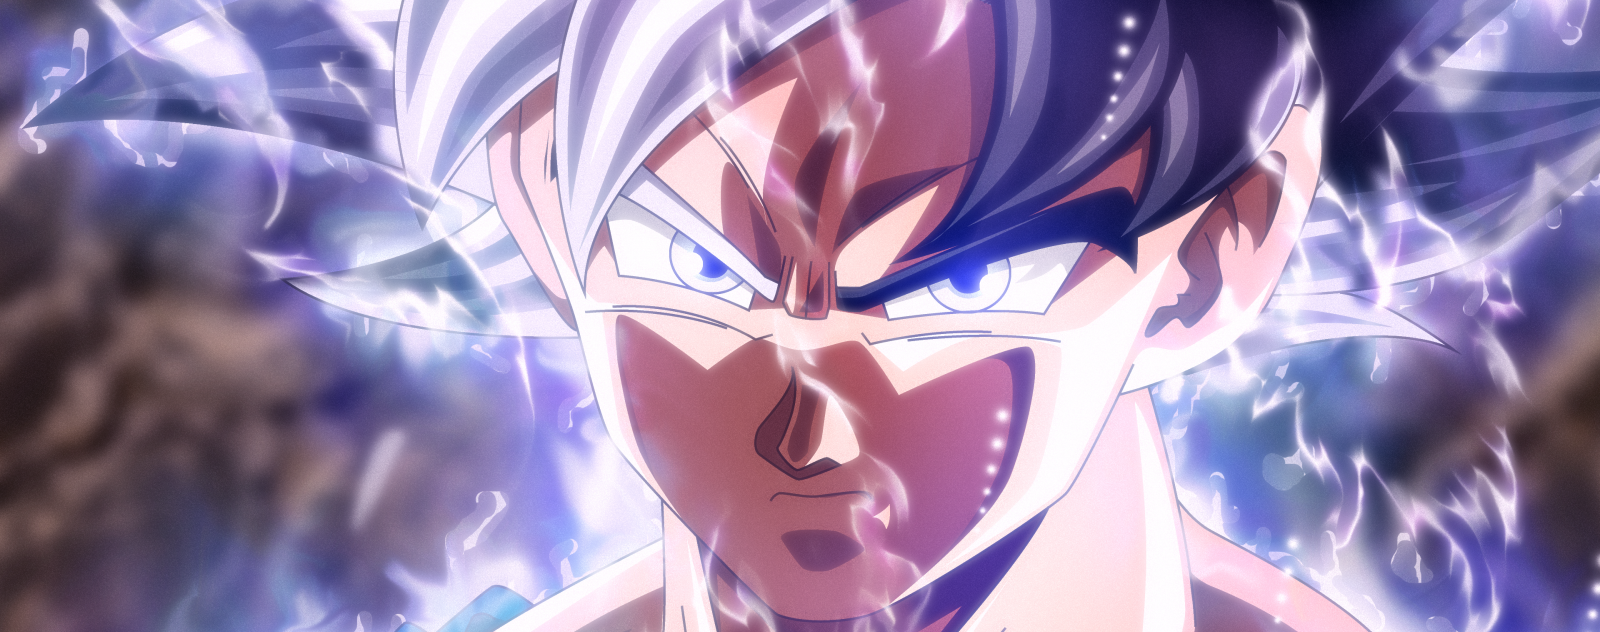 Ultra Instinct Dragon Ball Super